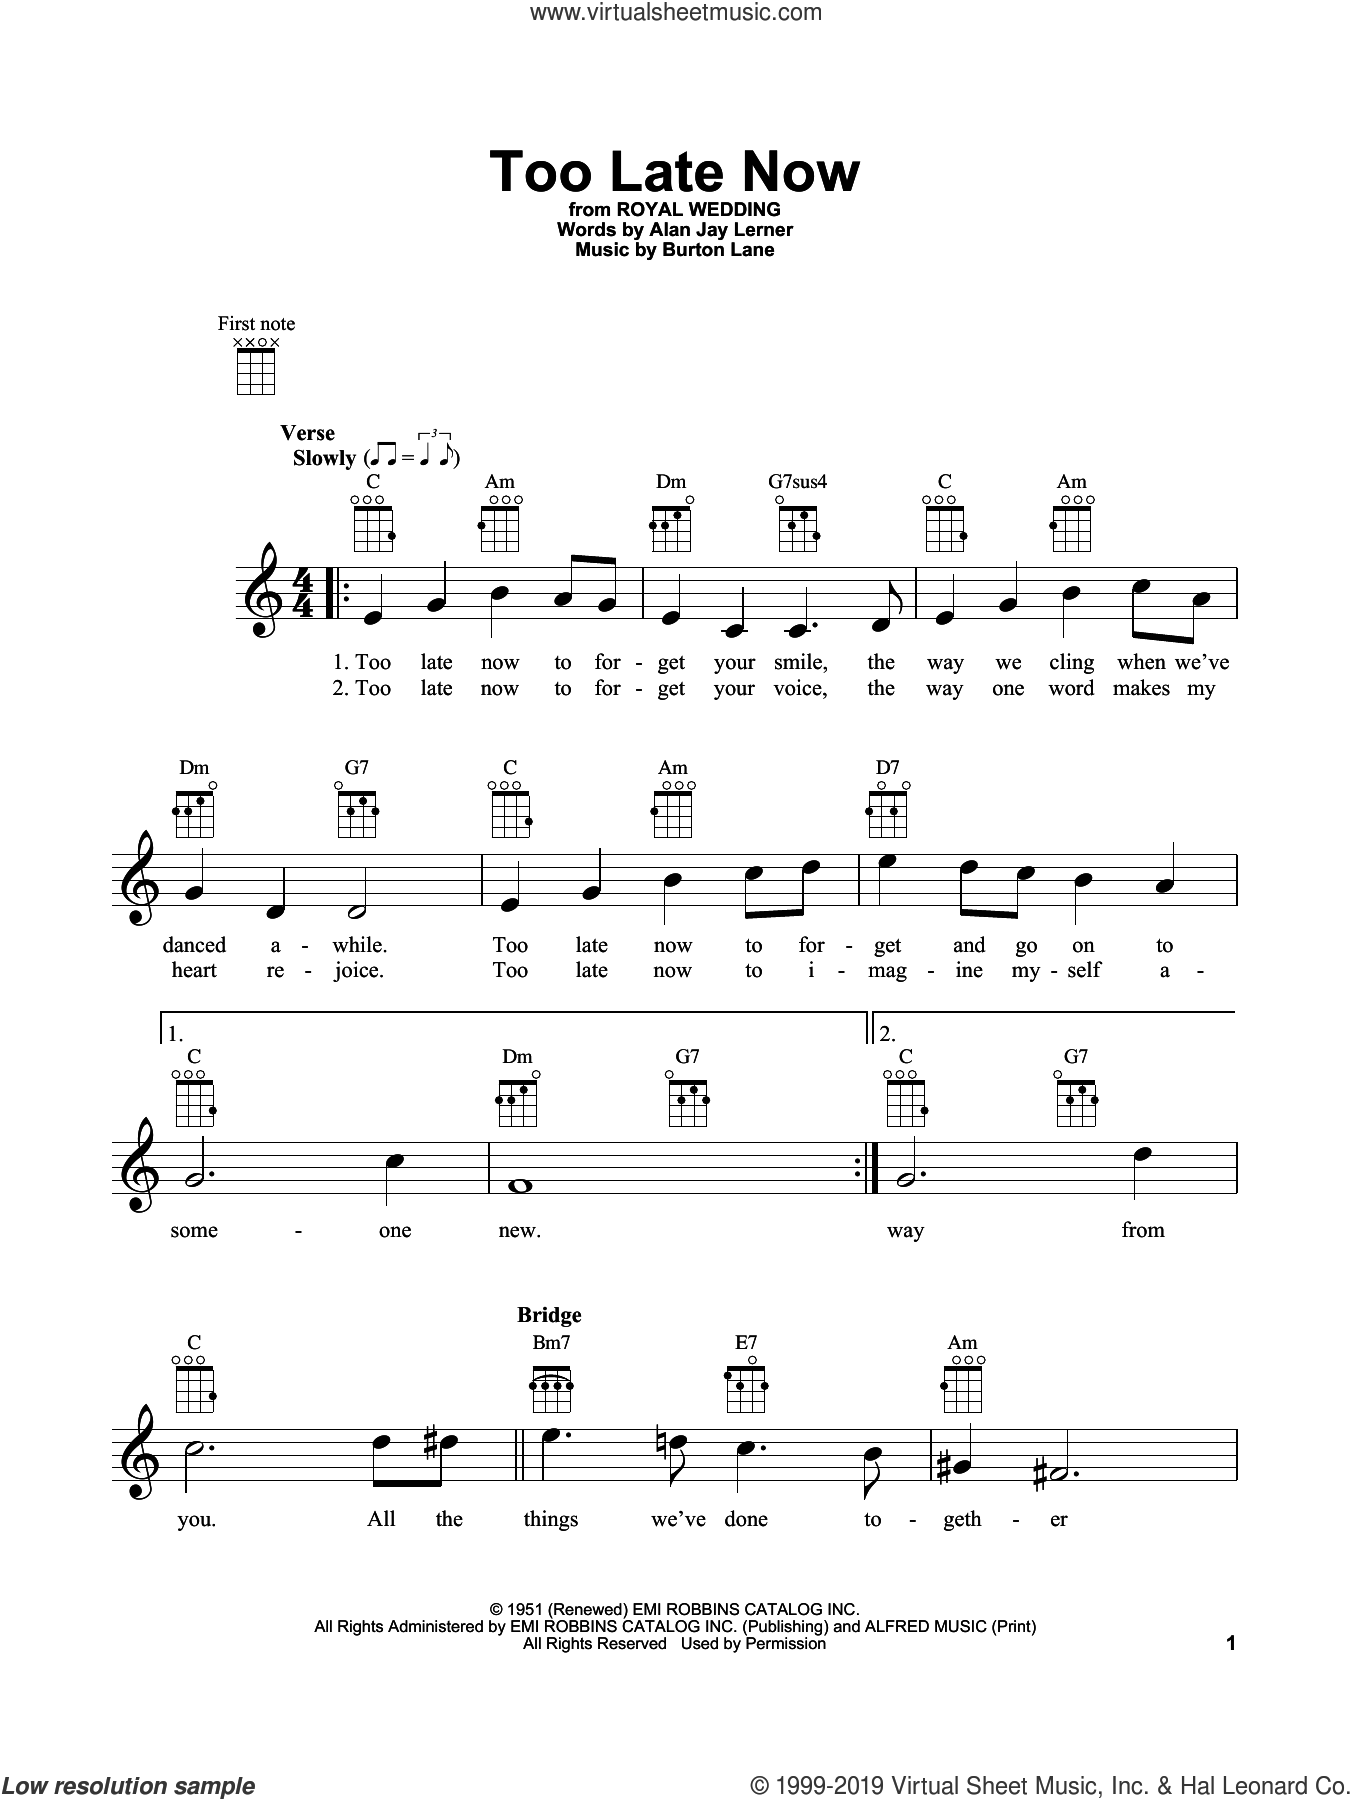 Too Late Now sheet music for ukulele by Tommy Flanagan, Alan Jay Lerner and Burton Lane, intermediate skill level